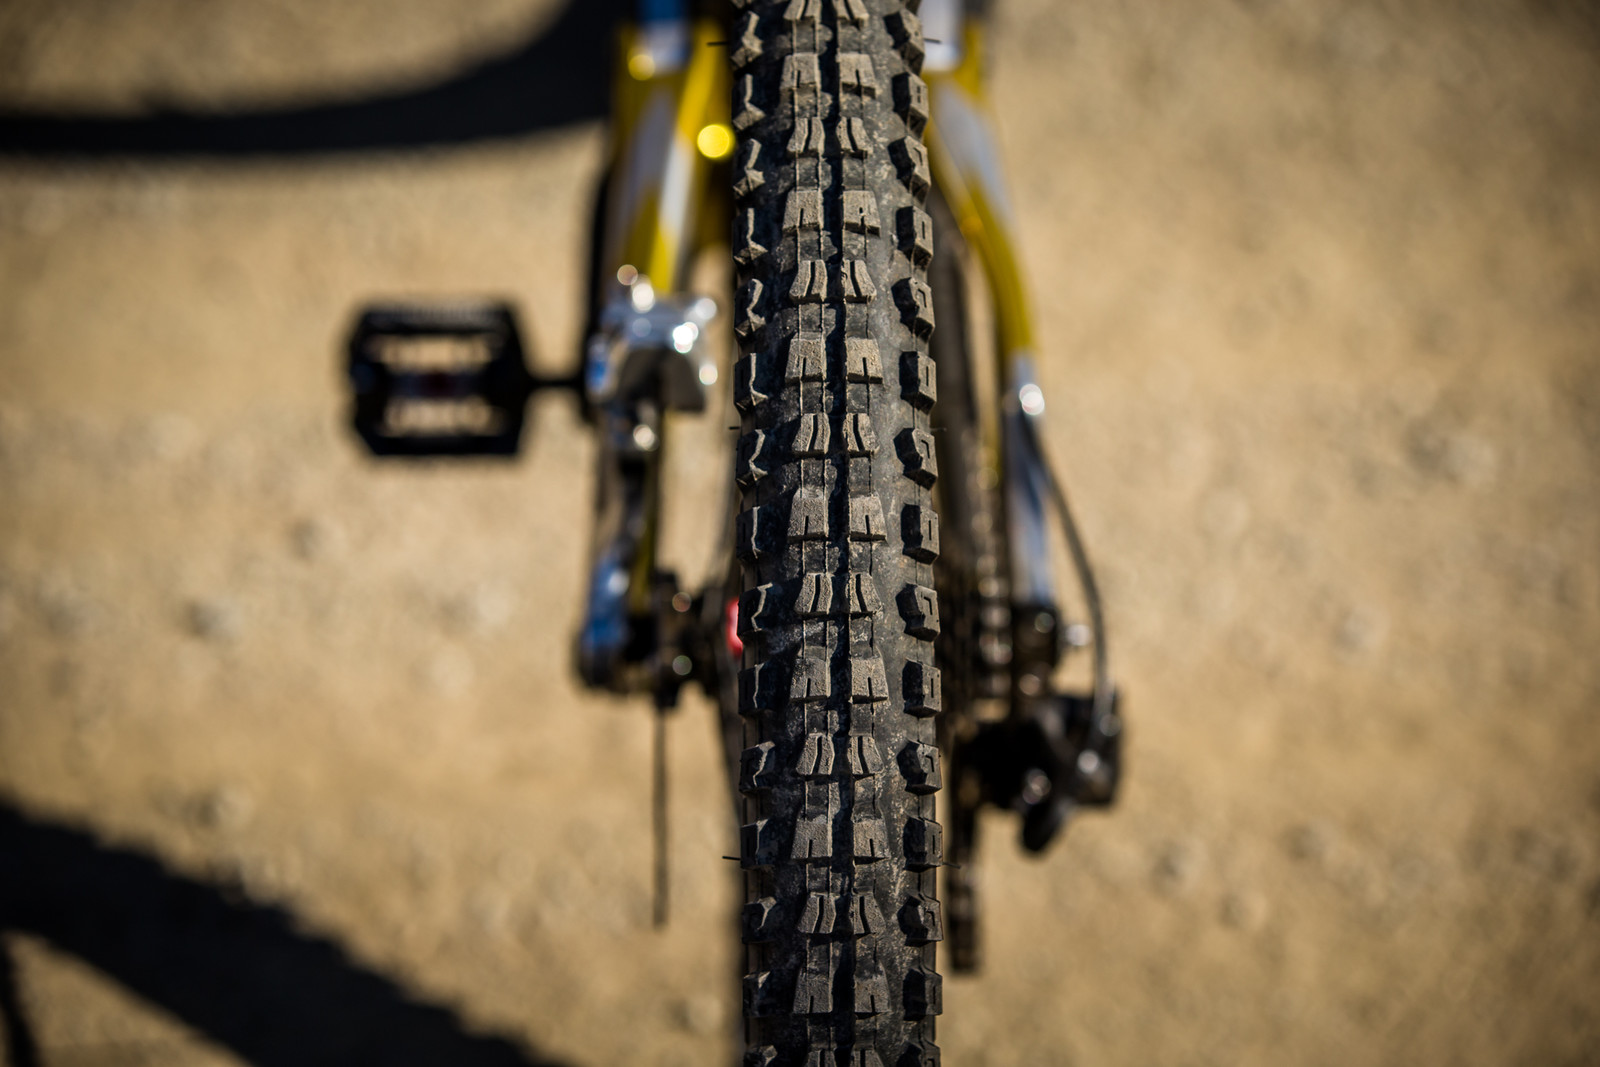 Specialized Butcher 2.3-inch Tires - WINNING BIKE - Loic Bruni's Specialized Demo - Mountain Biking Pictures - Vital MTB